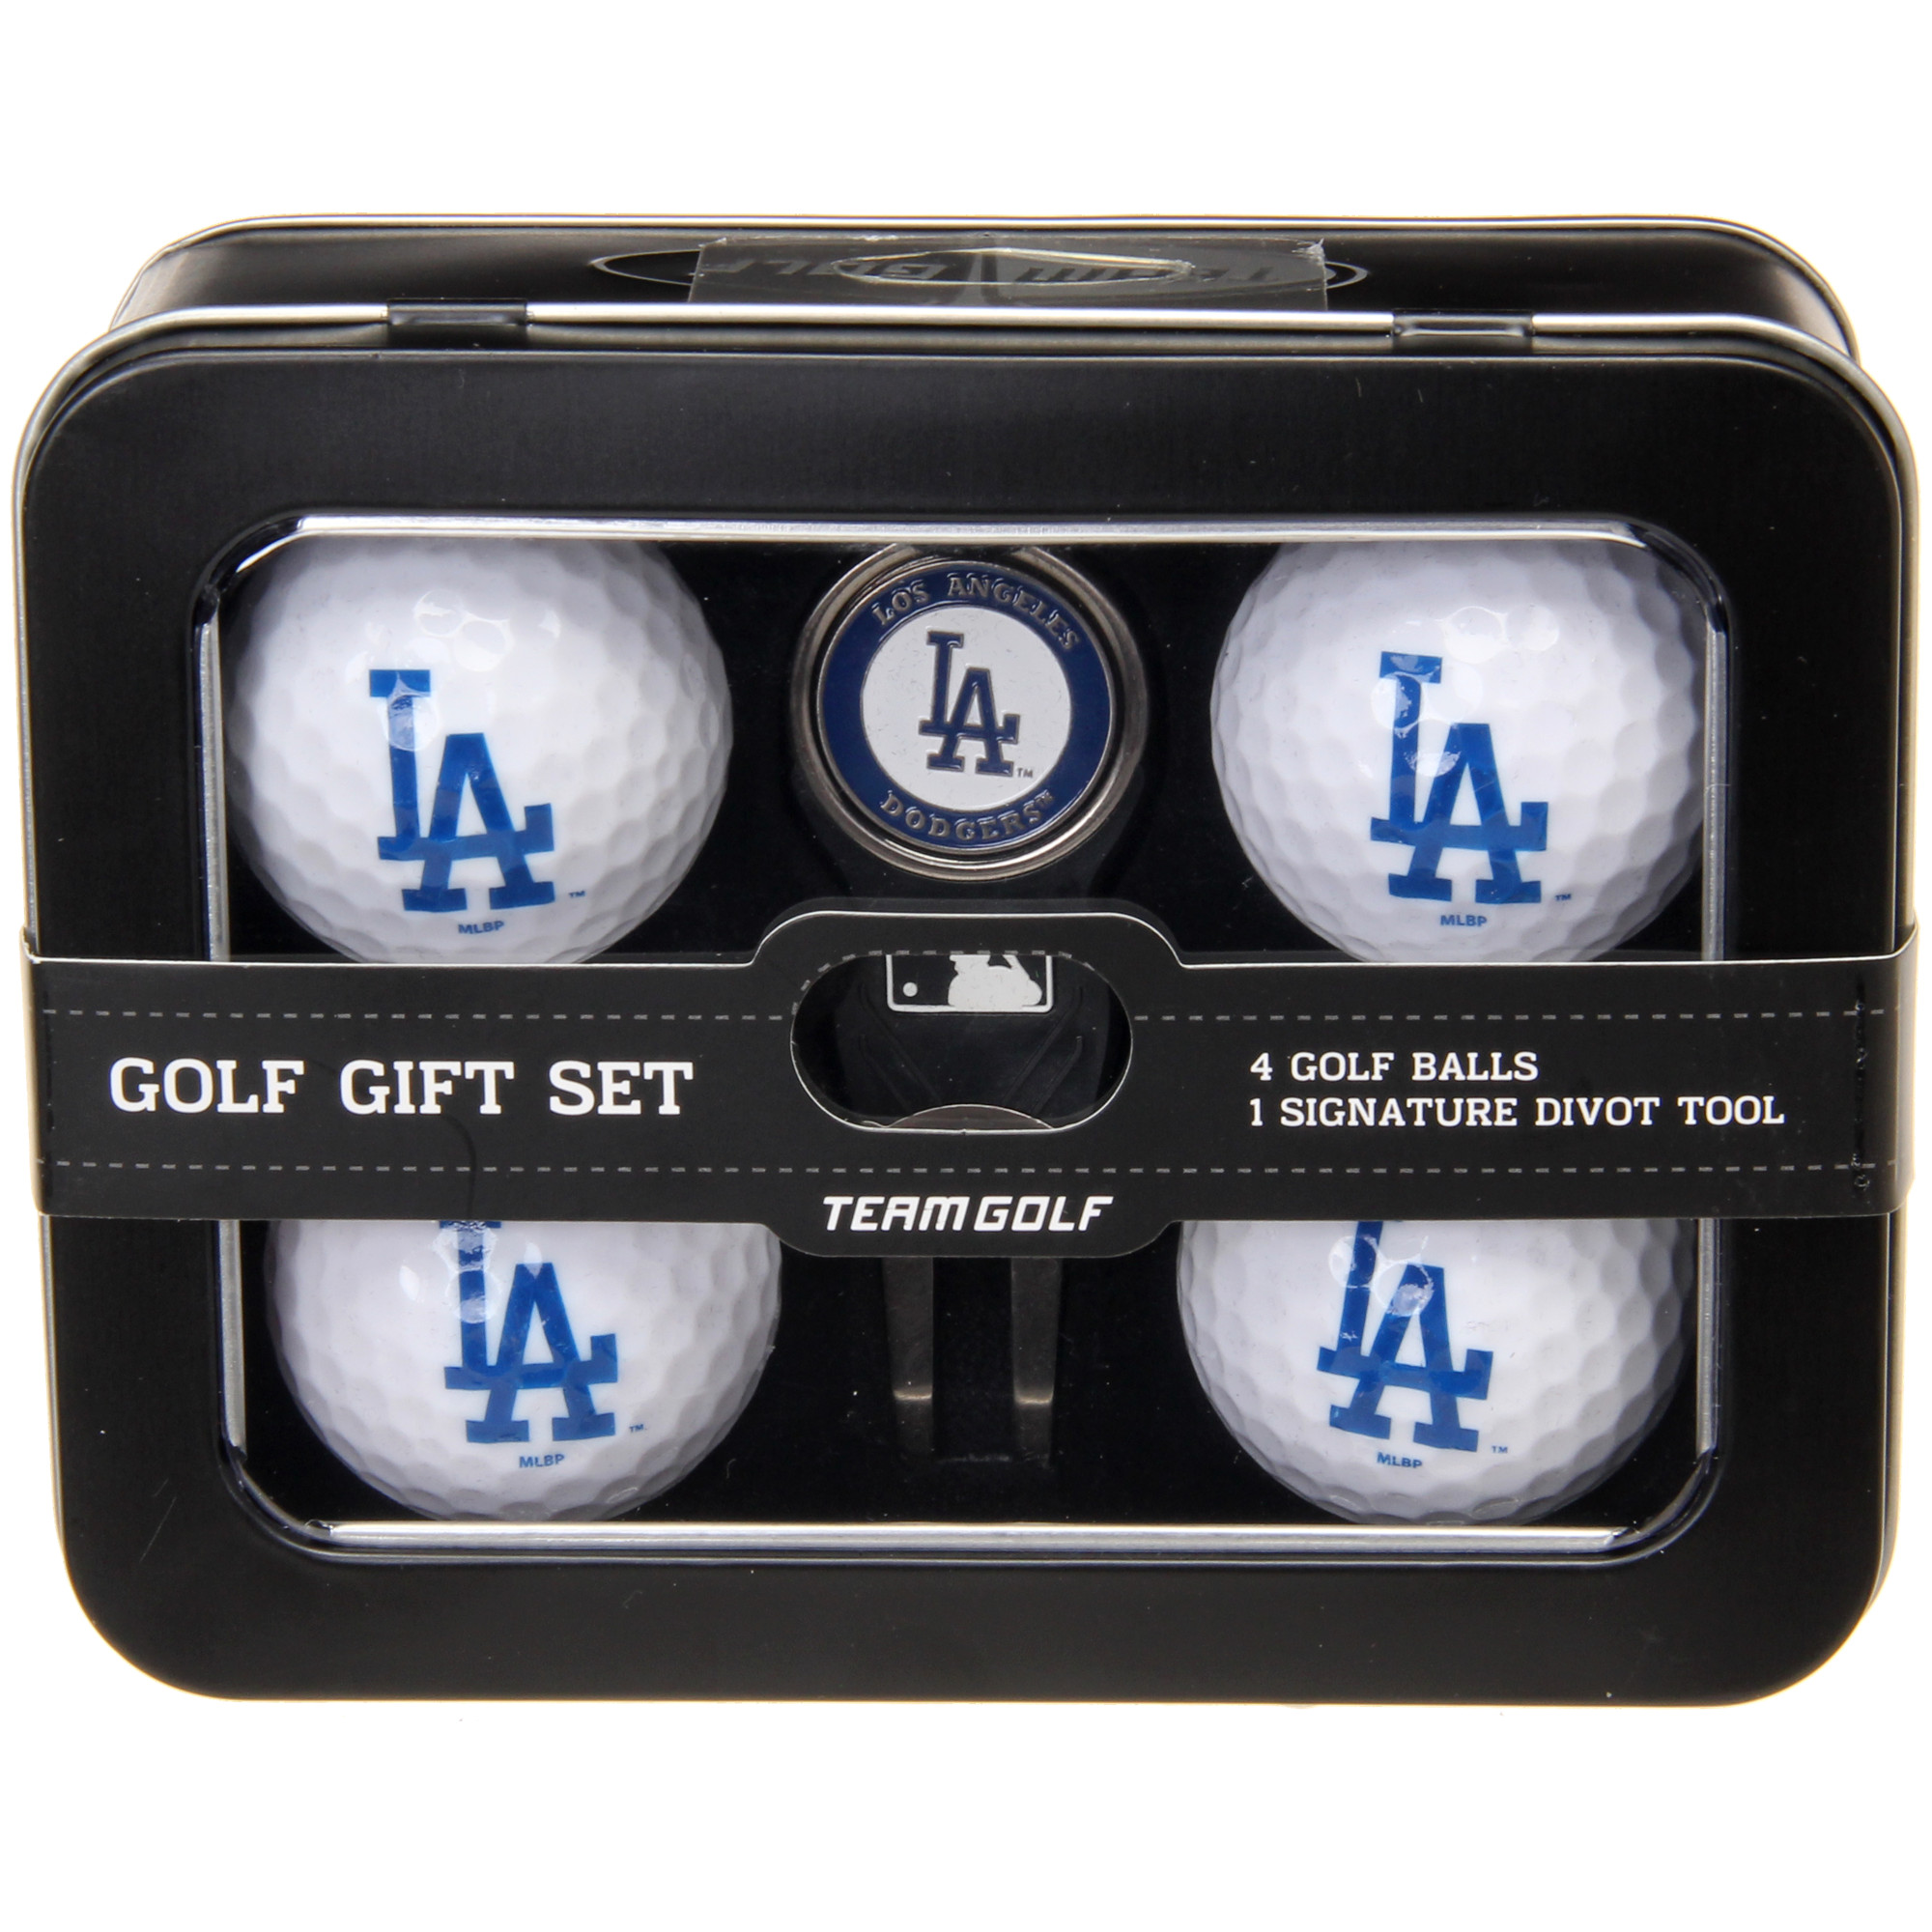 Los Angeles Dodgers 2016 4 Golf Ball and Divot Tool Set - No Size